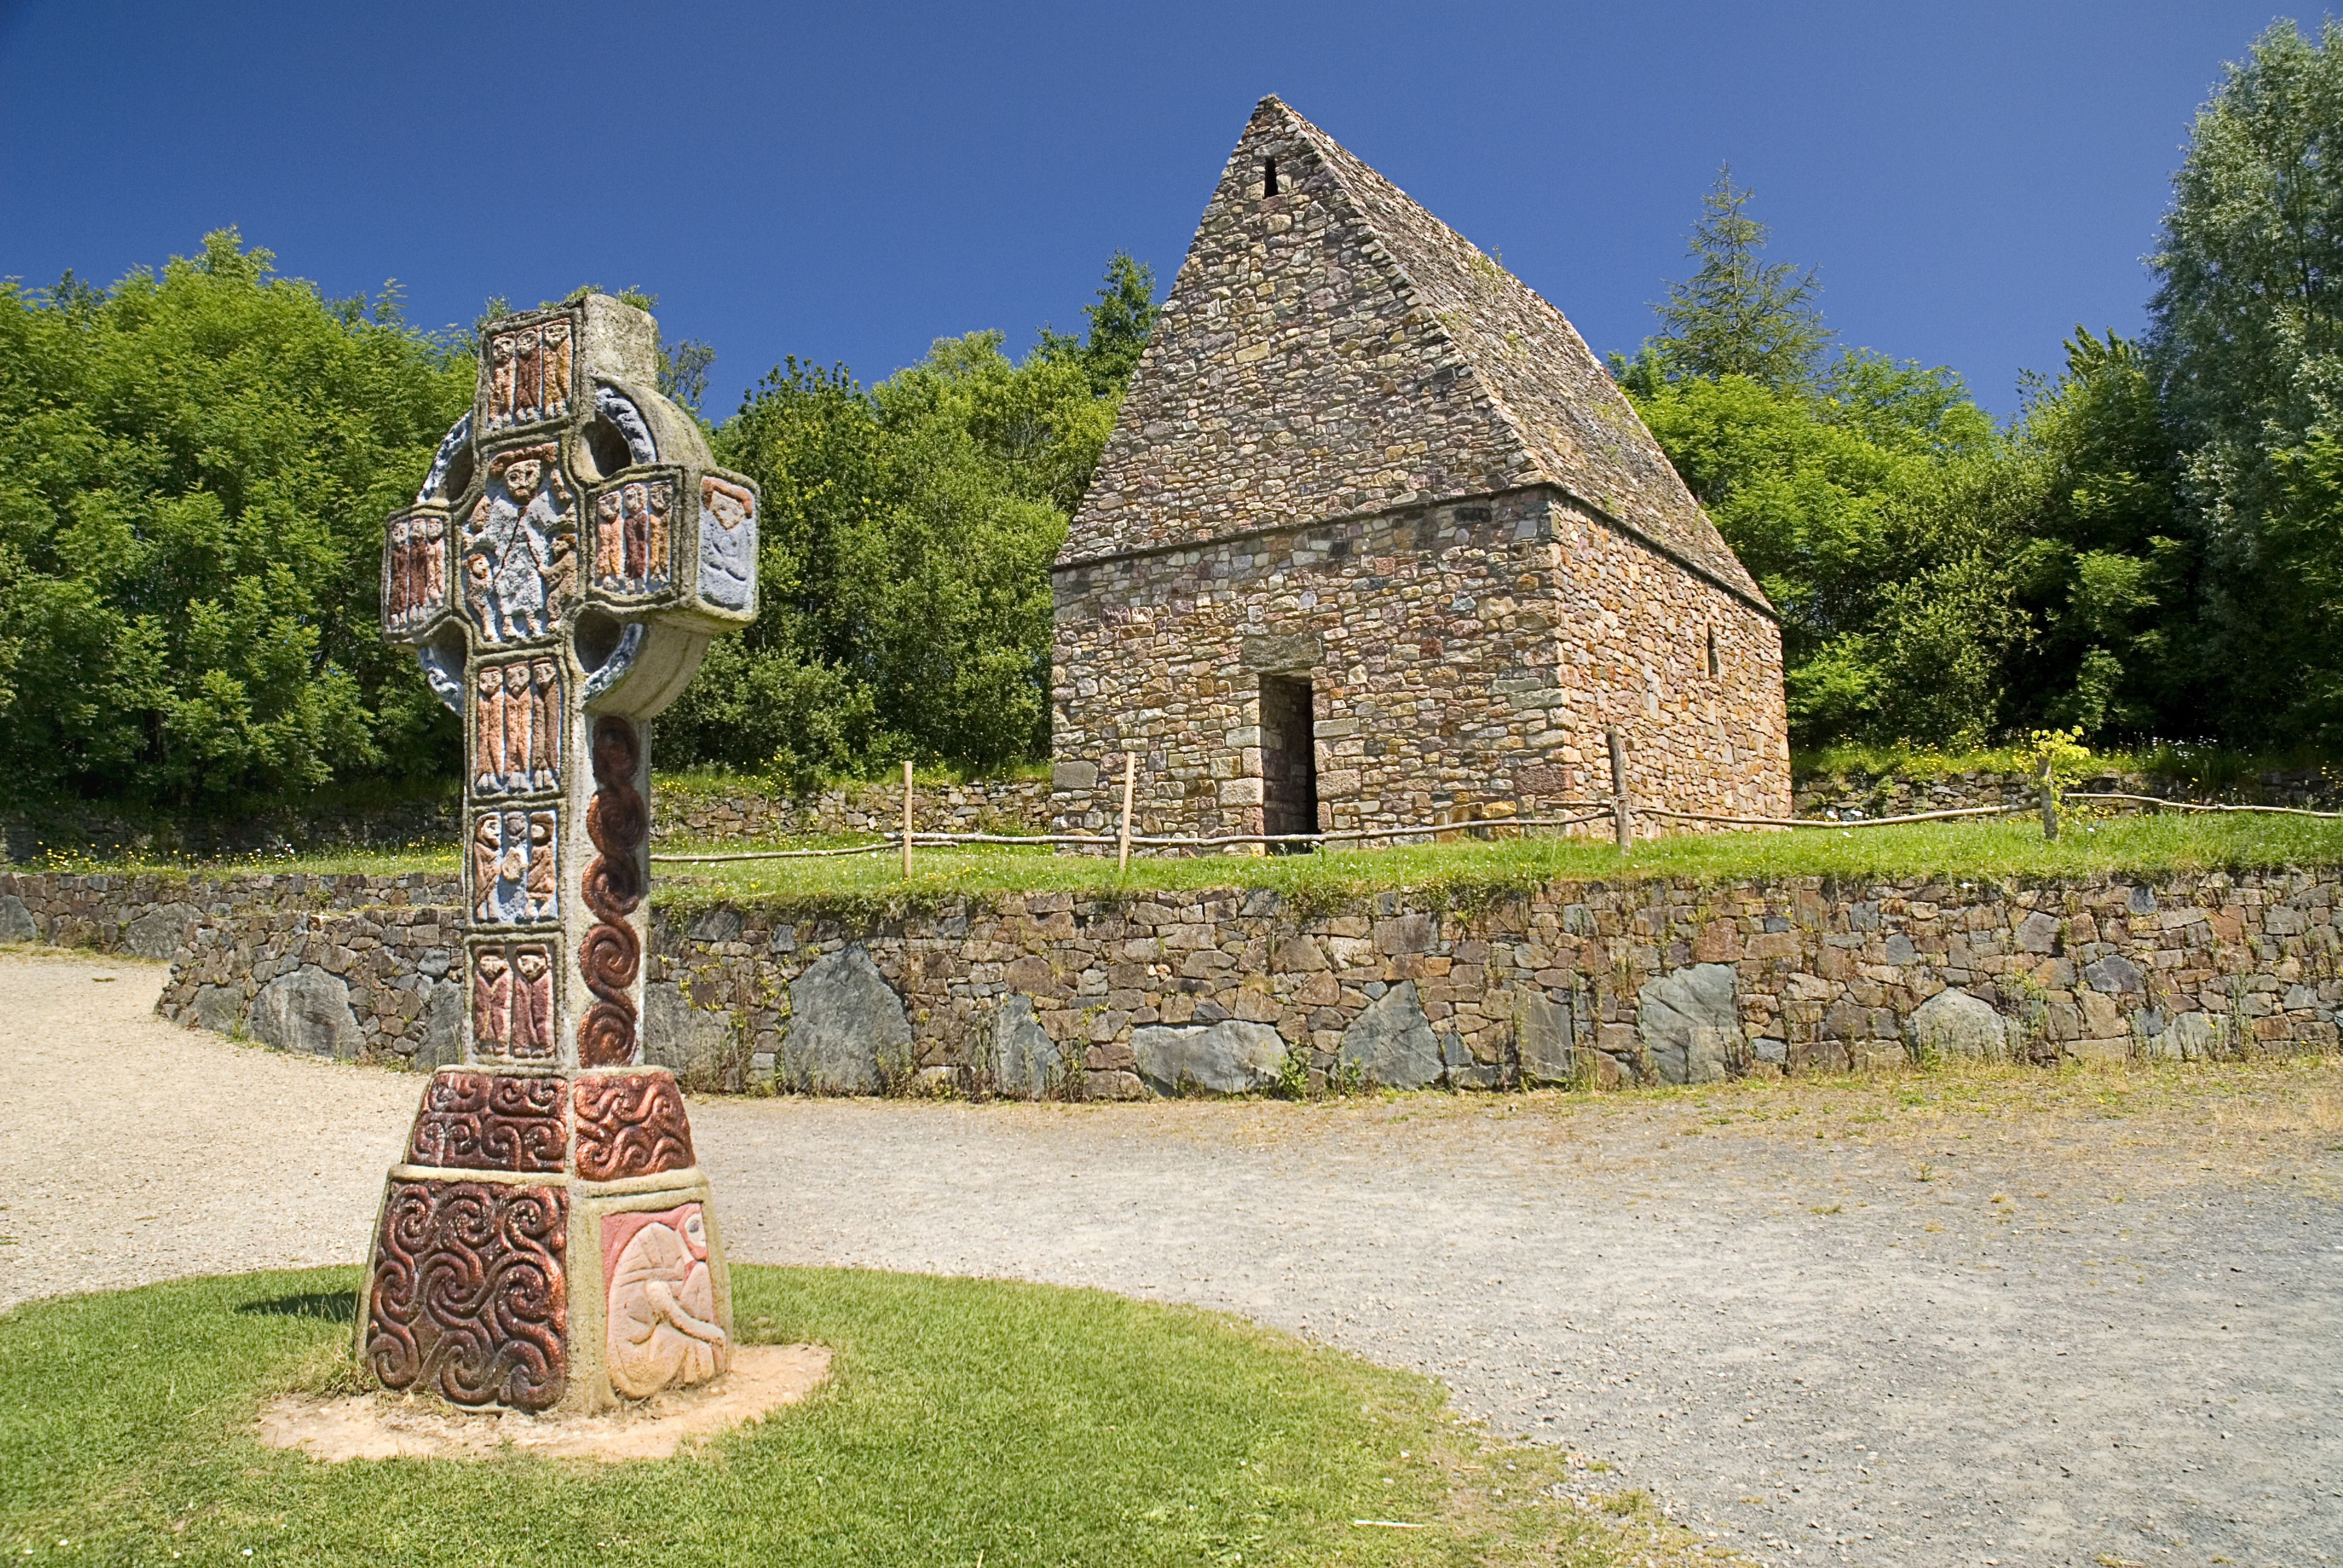 IRELAND, County Wexford, Irish National Heritage Park, Reconstruction of a typical monastic oratory with replica of a celtic cross in front.